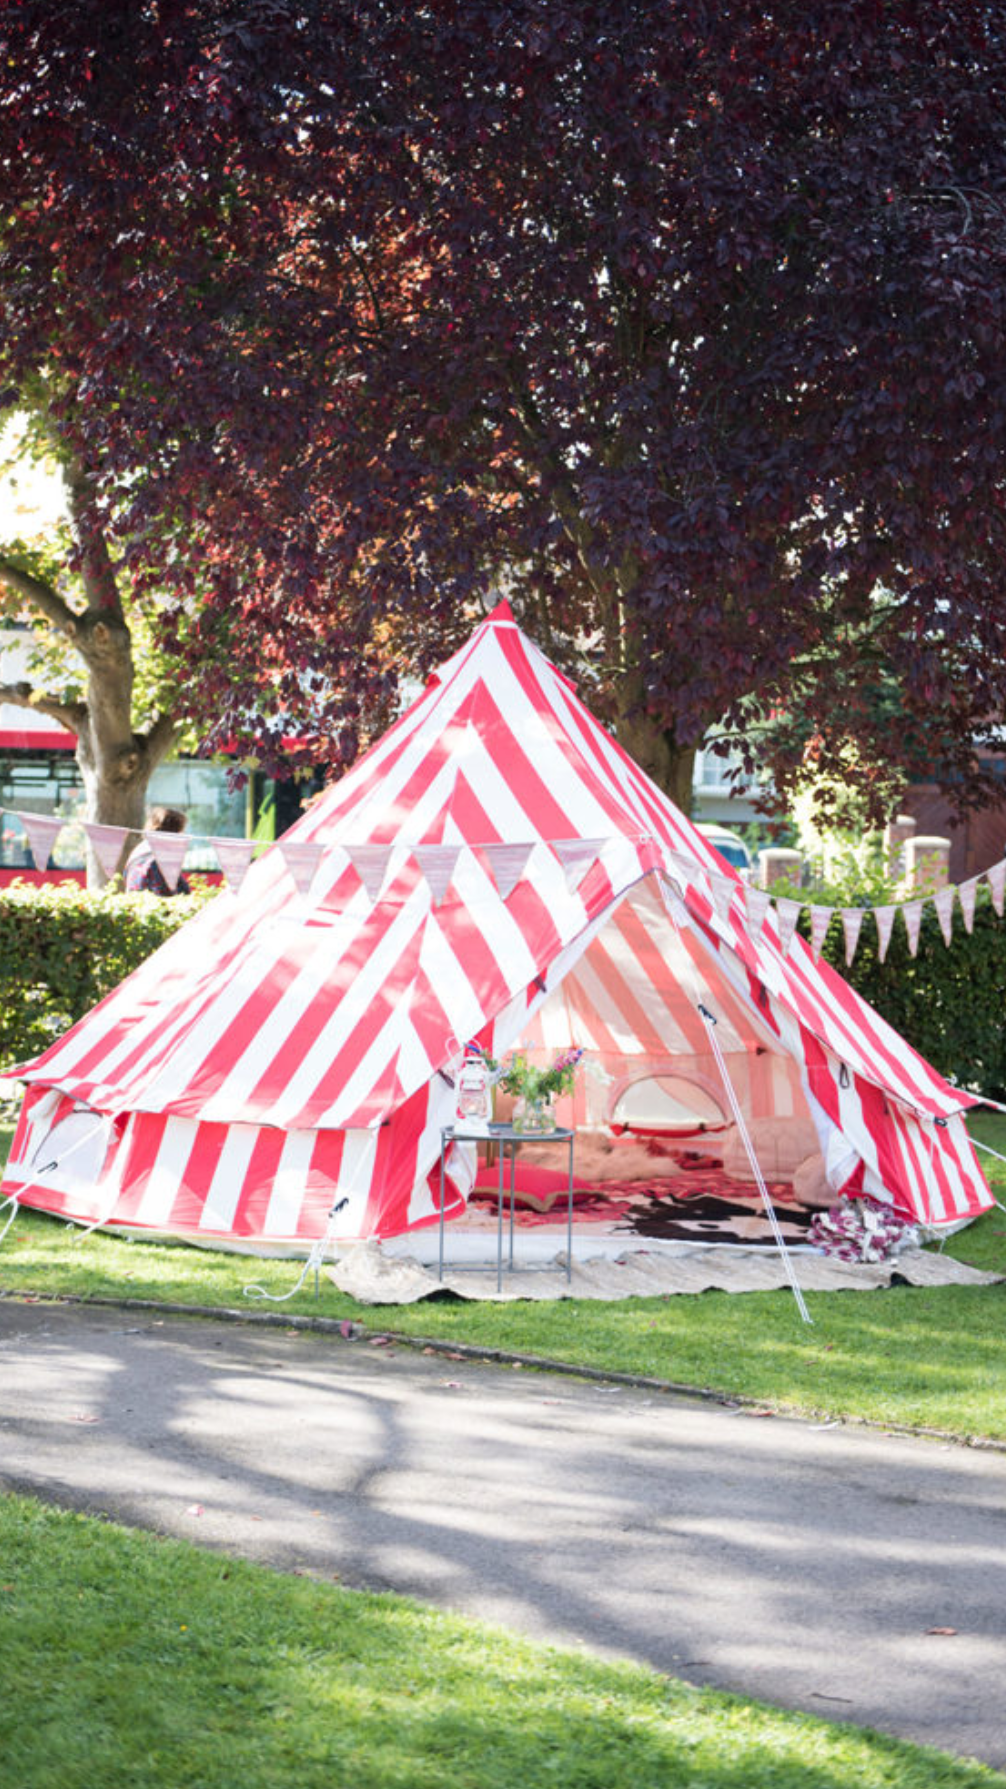 The  Glam Camping Co  transformed a quiet corner of the Church grounds into a glamorous insta meet up with their gorgeous Strawberries & Cream bell tent.